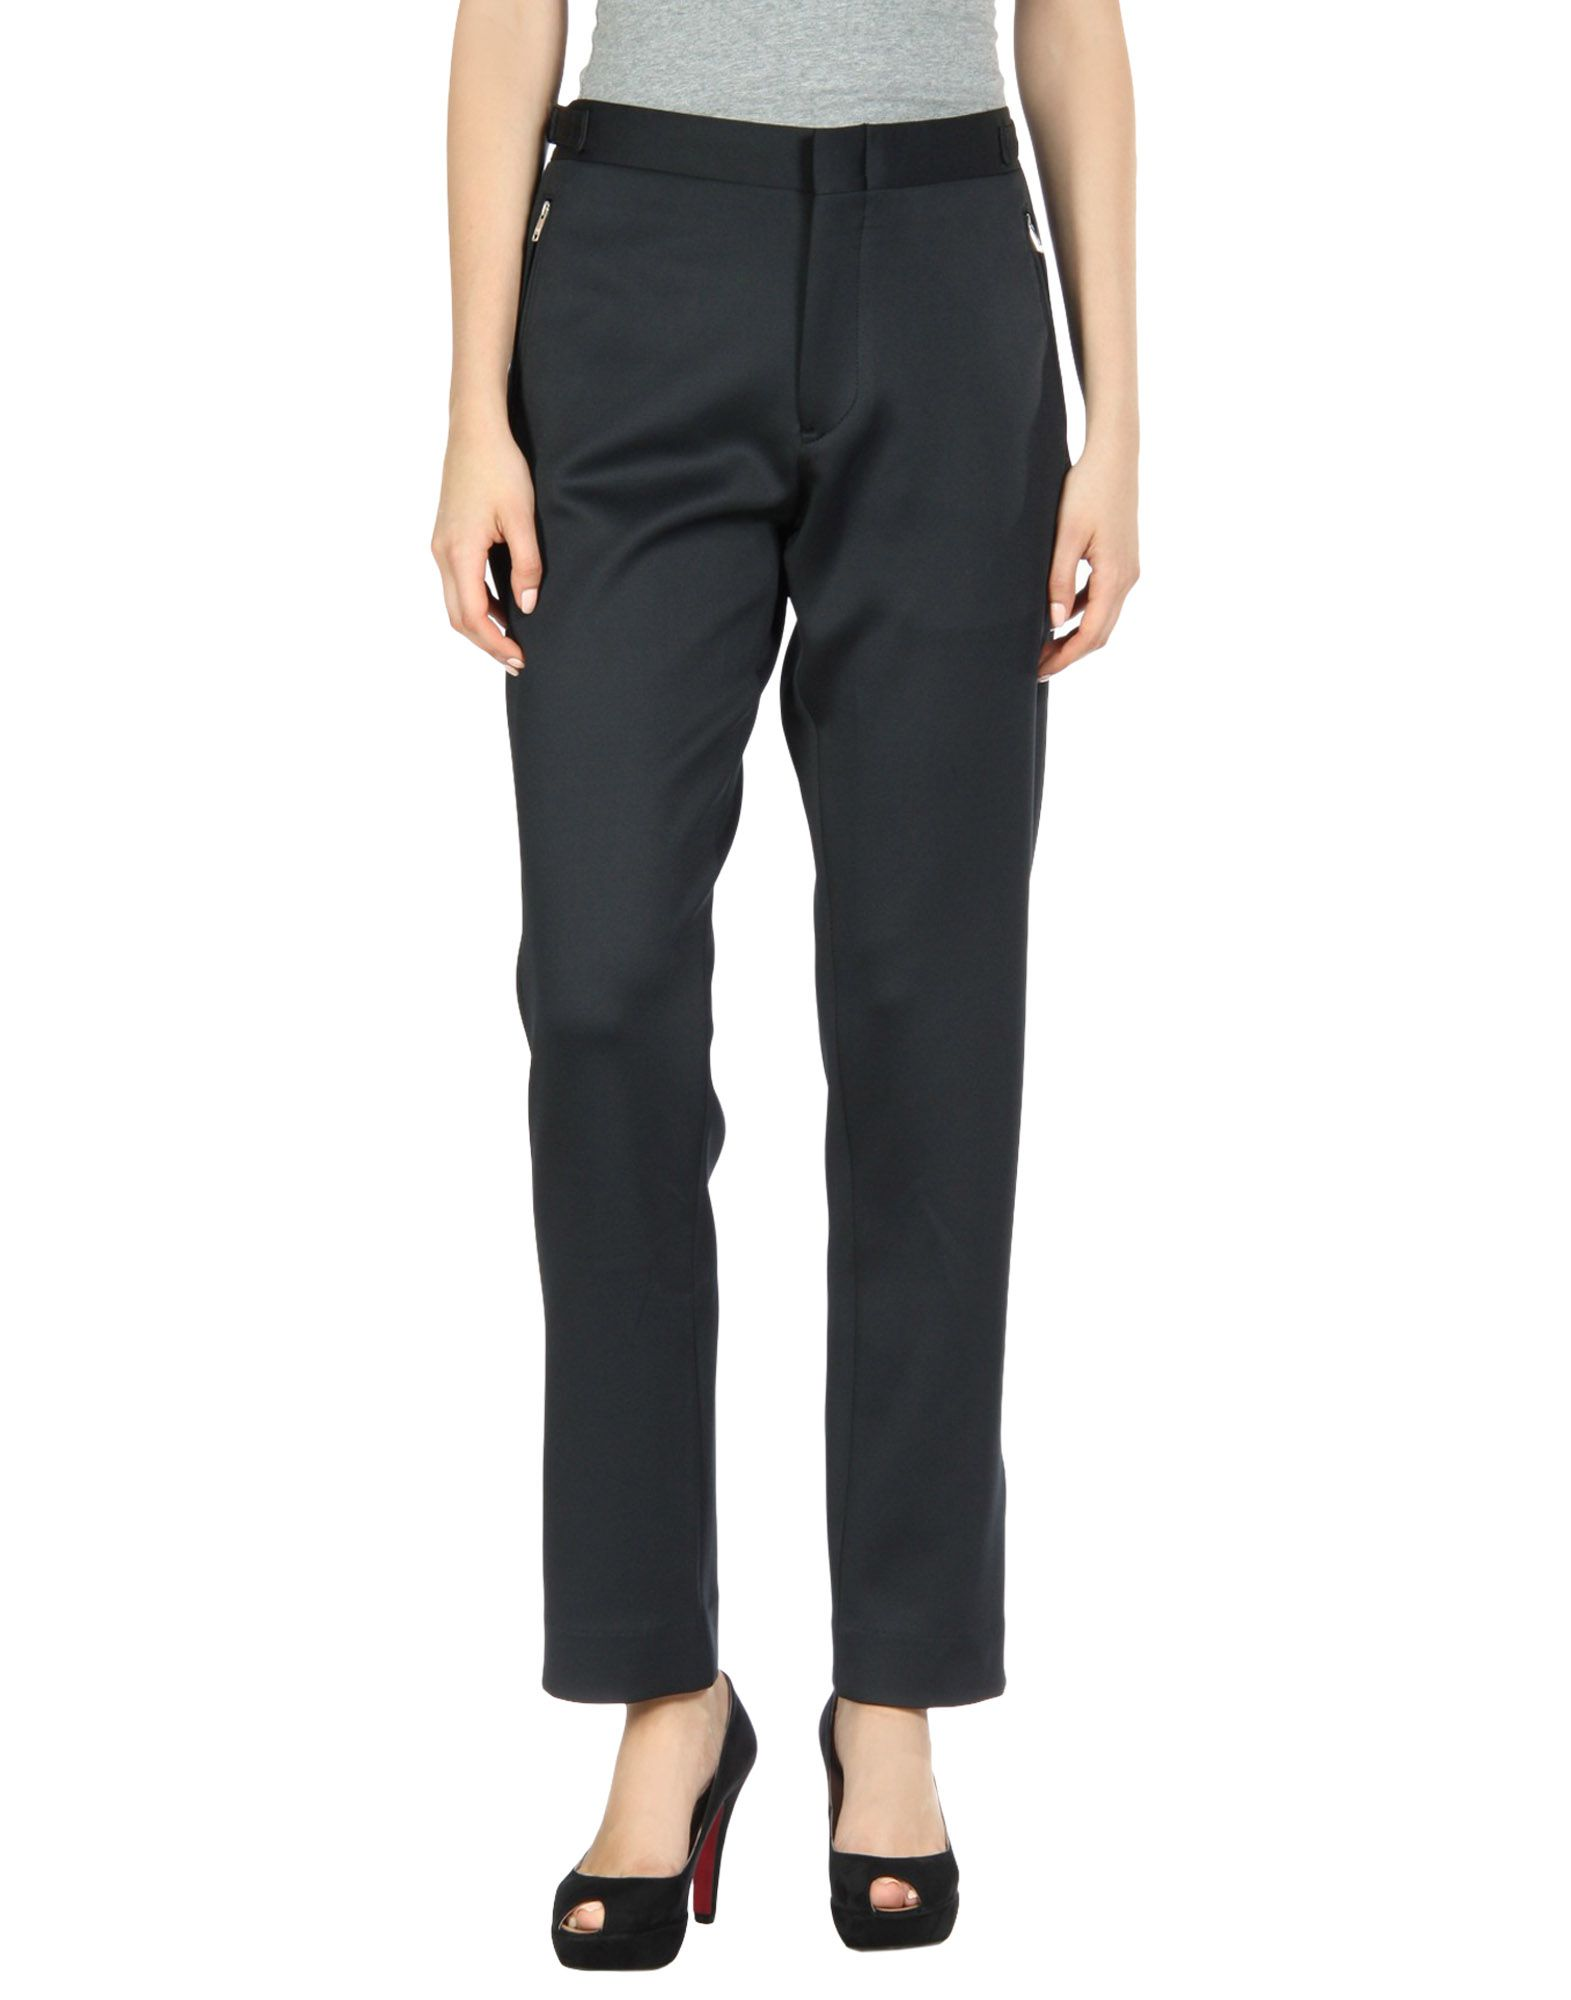 OVADIA & SONS NEW YORK Повседневные брюки сланцы joss joss jo660awicf60 page 2 page 4 page 3 page 4 page 1